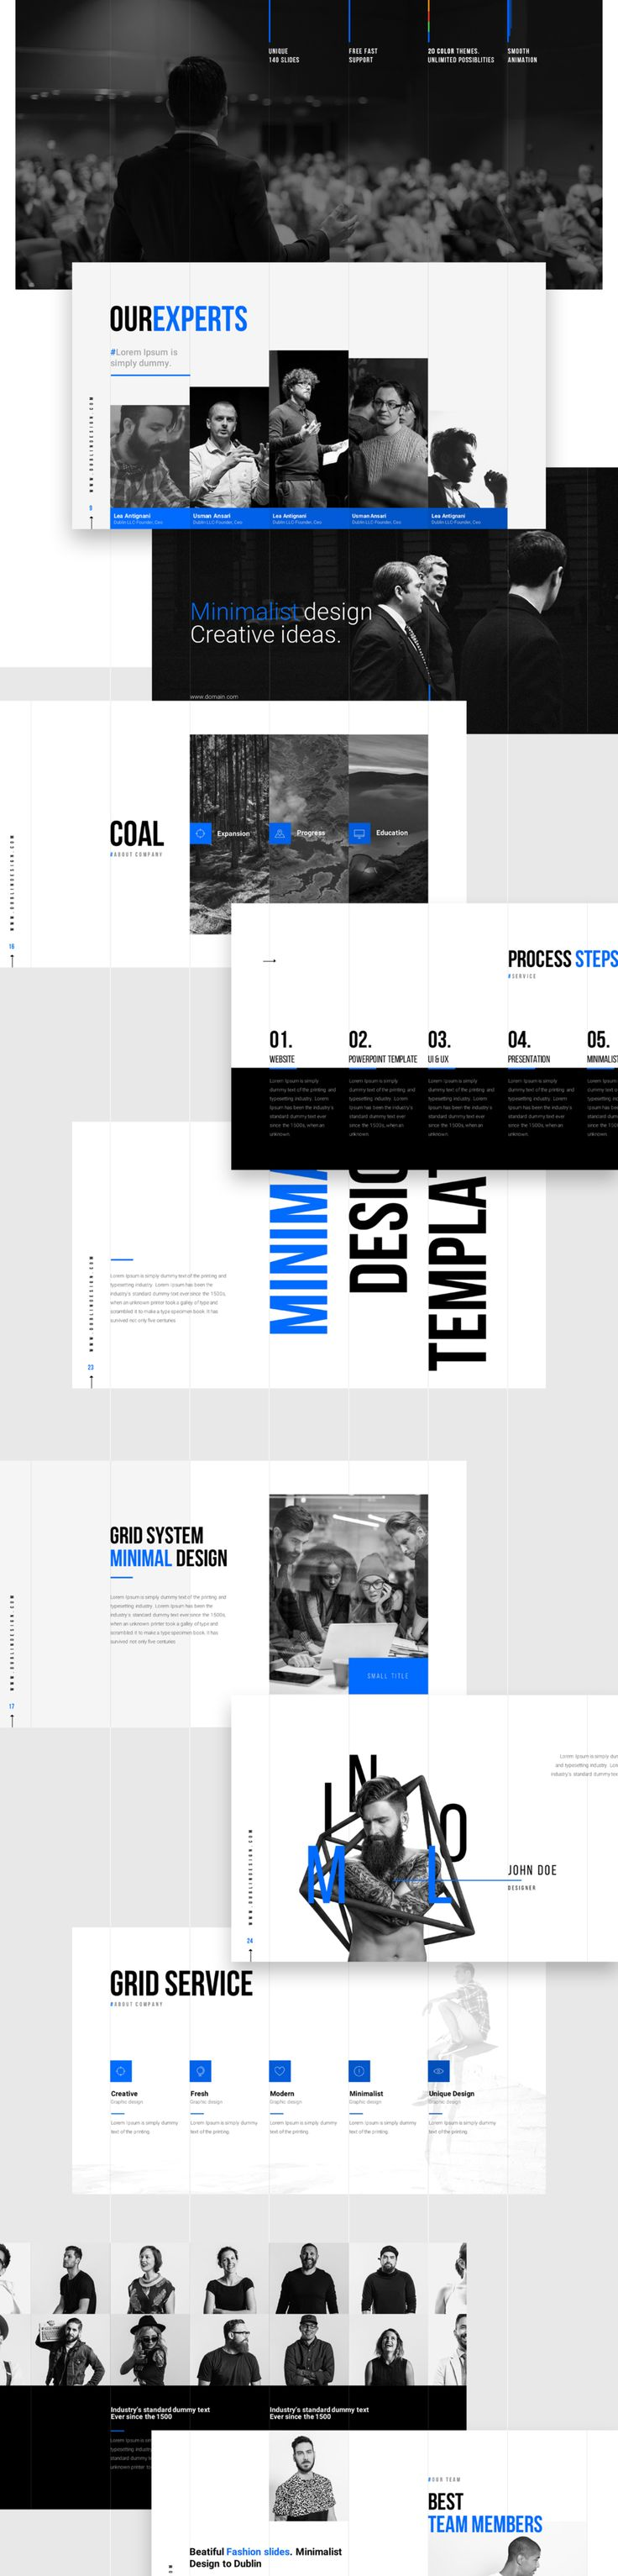 Grids is a Minimalist multipurpose keynote and powerpoint presentation. When…